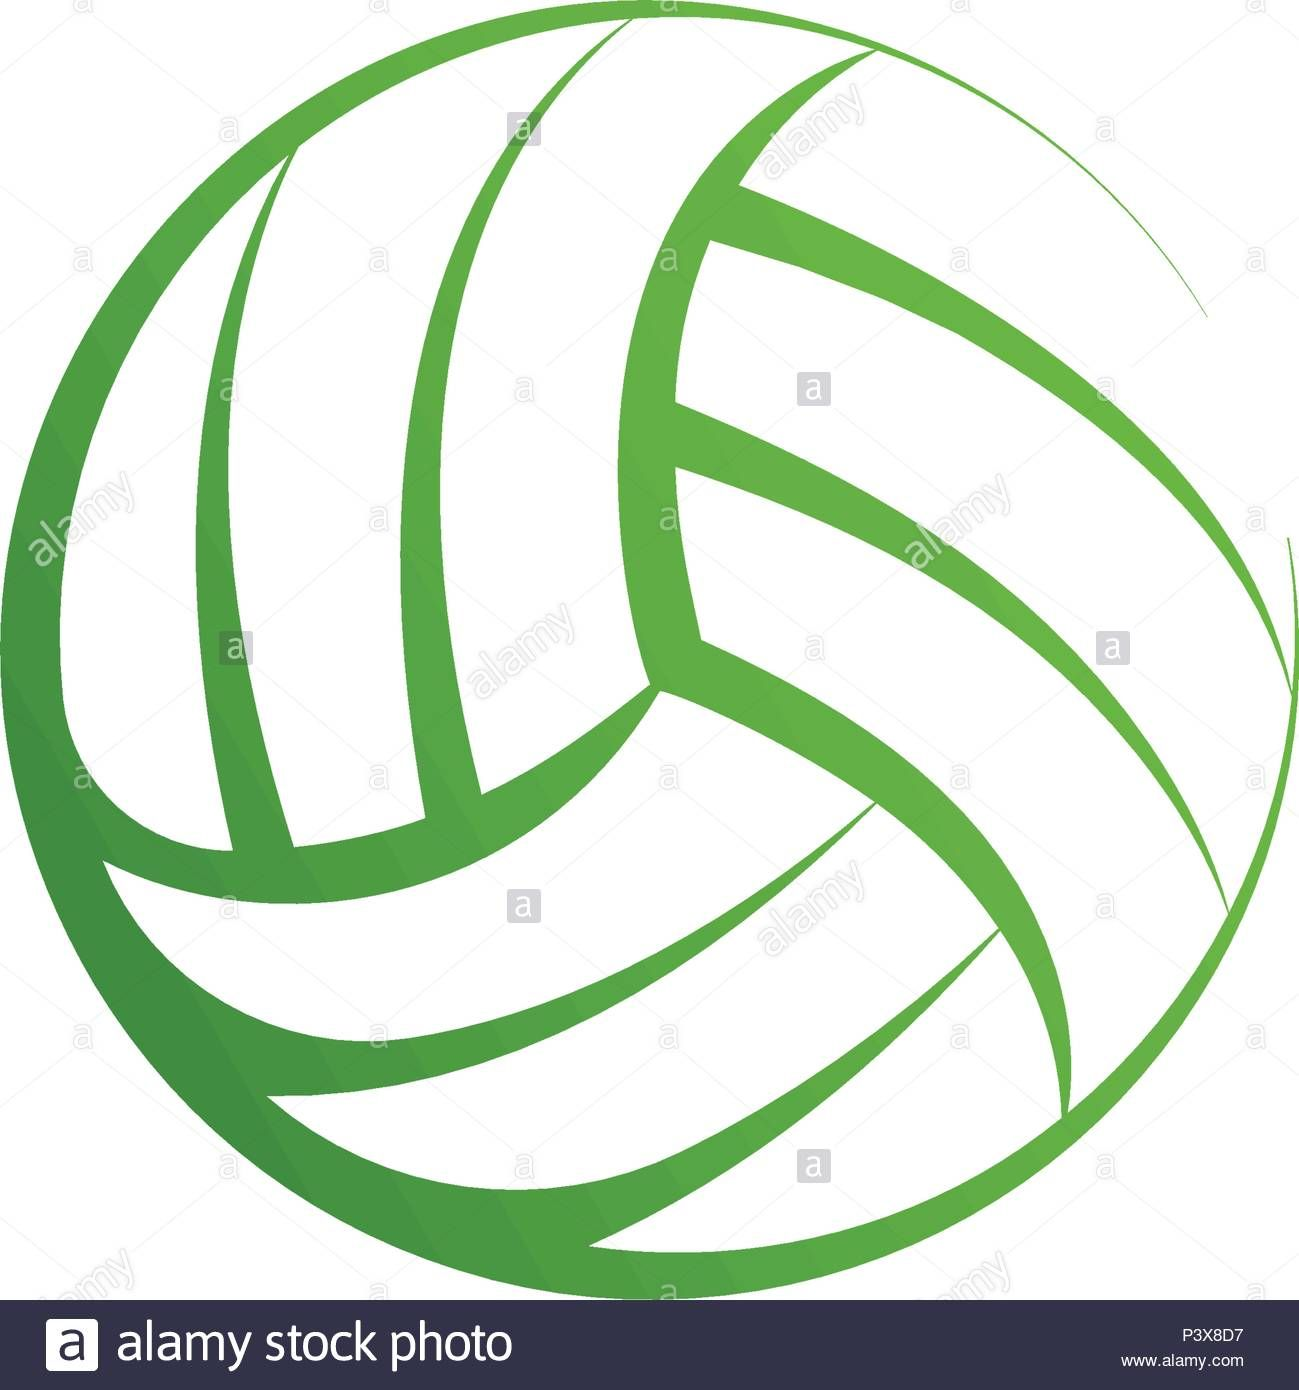 Download This Stock Vector Volleyball Logo Element Vector Volley Ball Icon Isolated Sport Sign Template Sum Sign Templates Vector Illustration Sports Signs